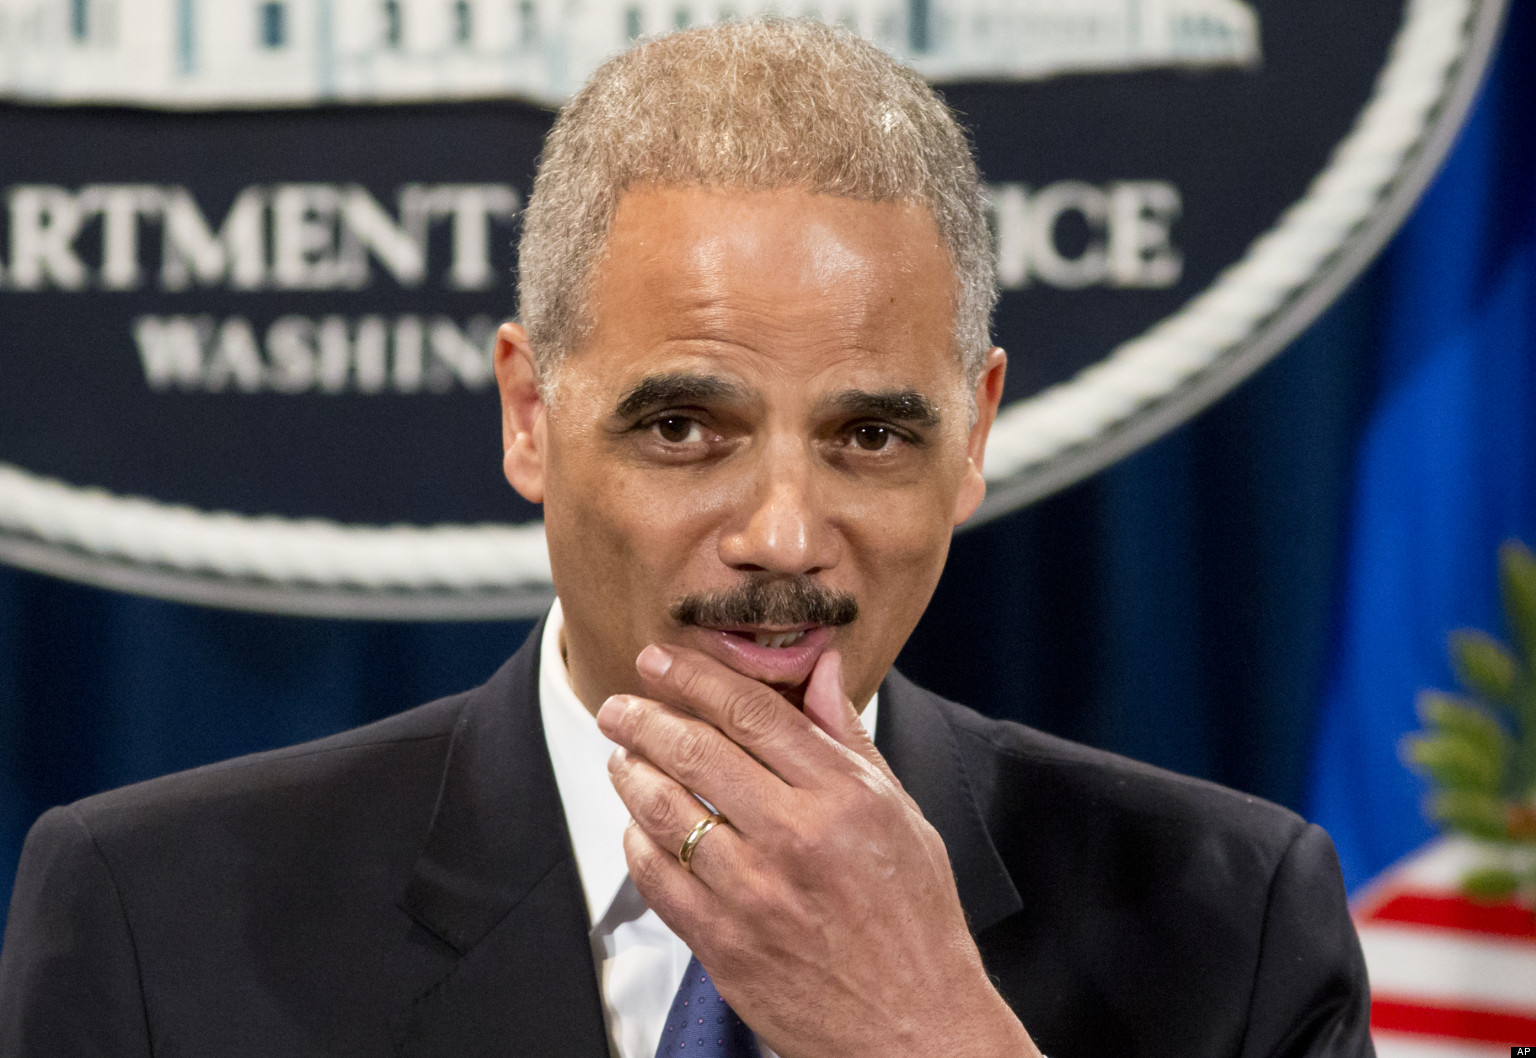 Eric Holder covers-up Russia scandal